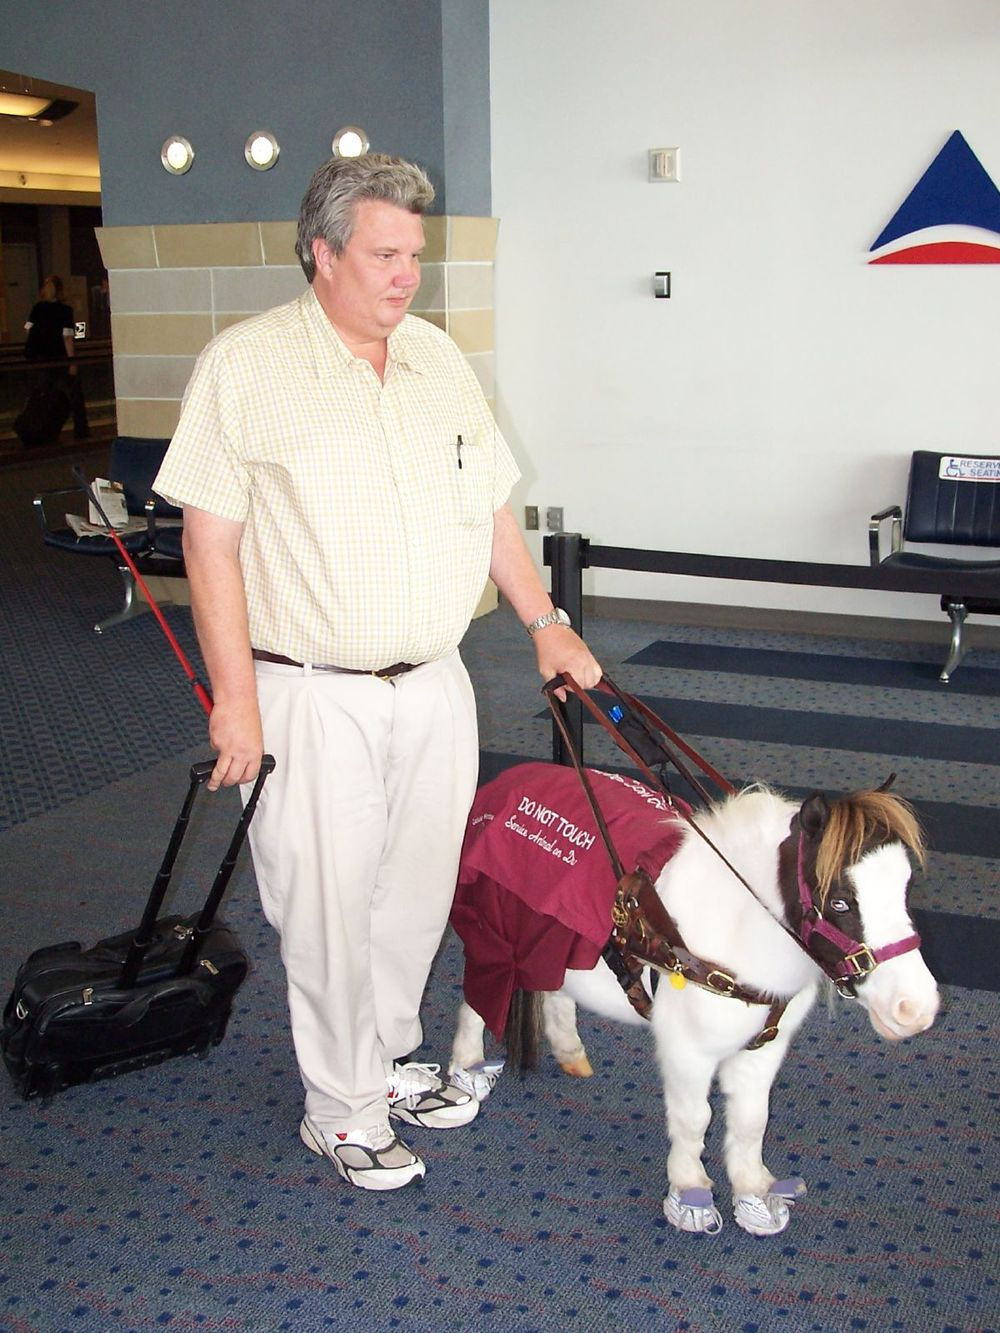 Shout out to the service animals (ponies included!) of the world!